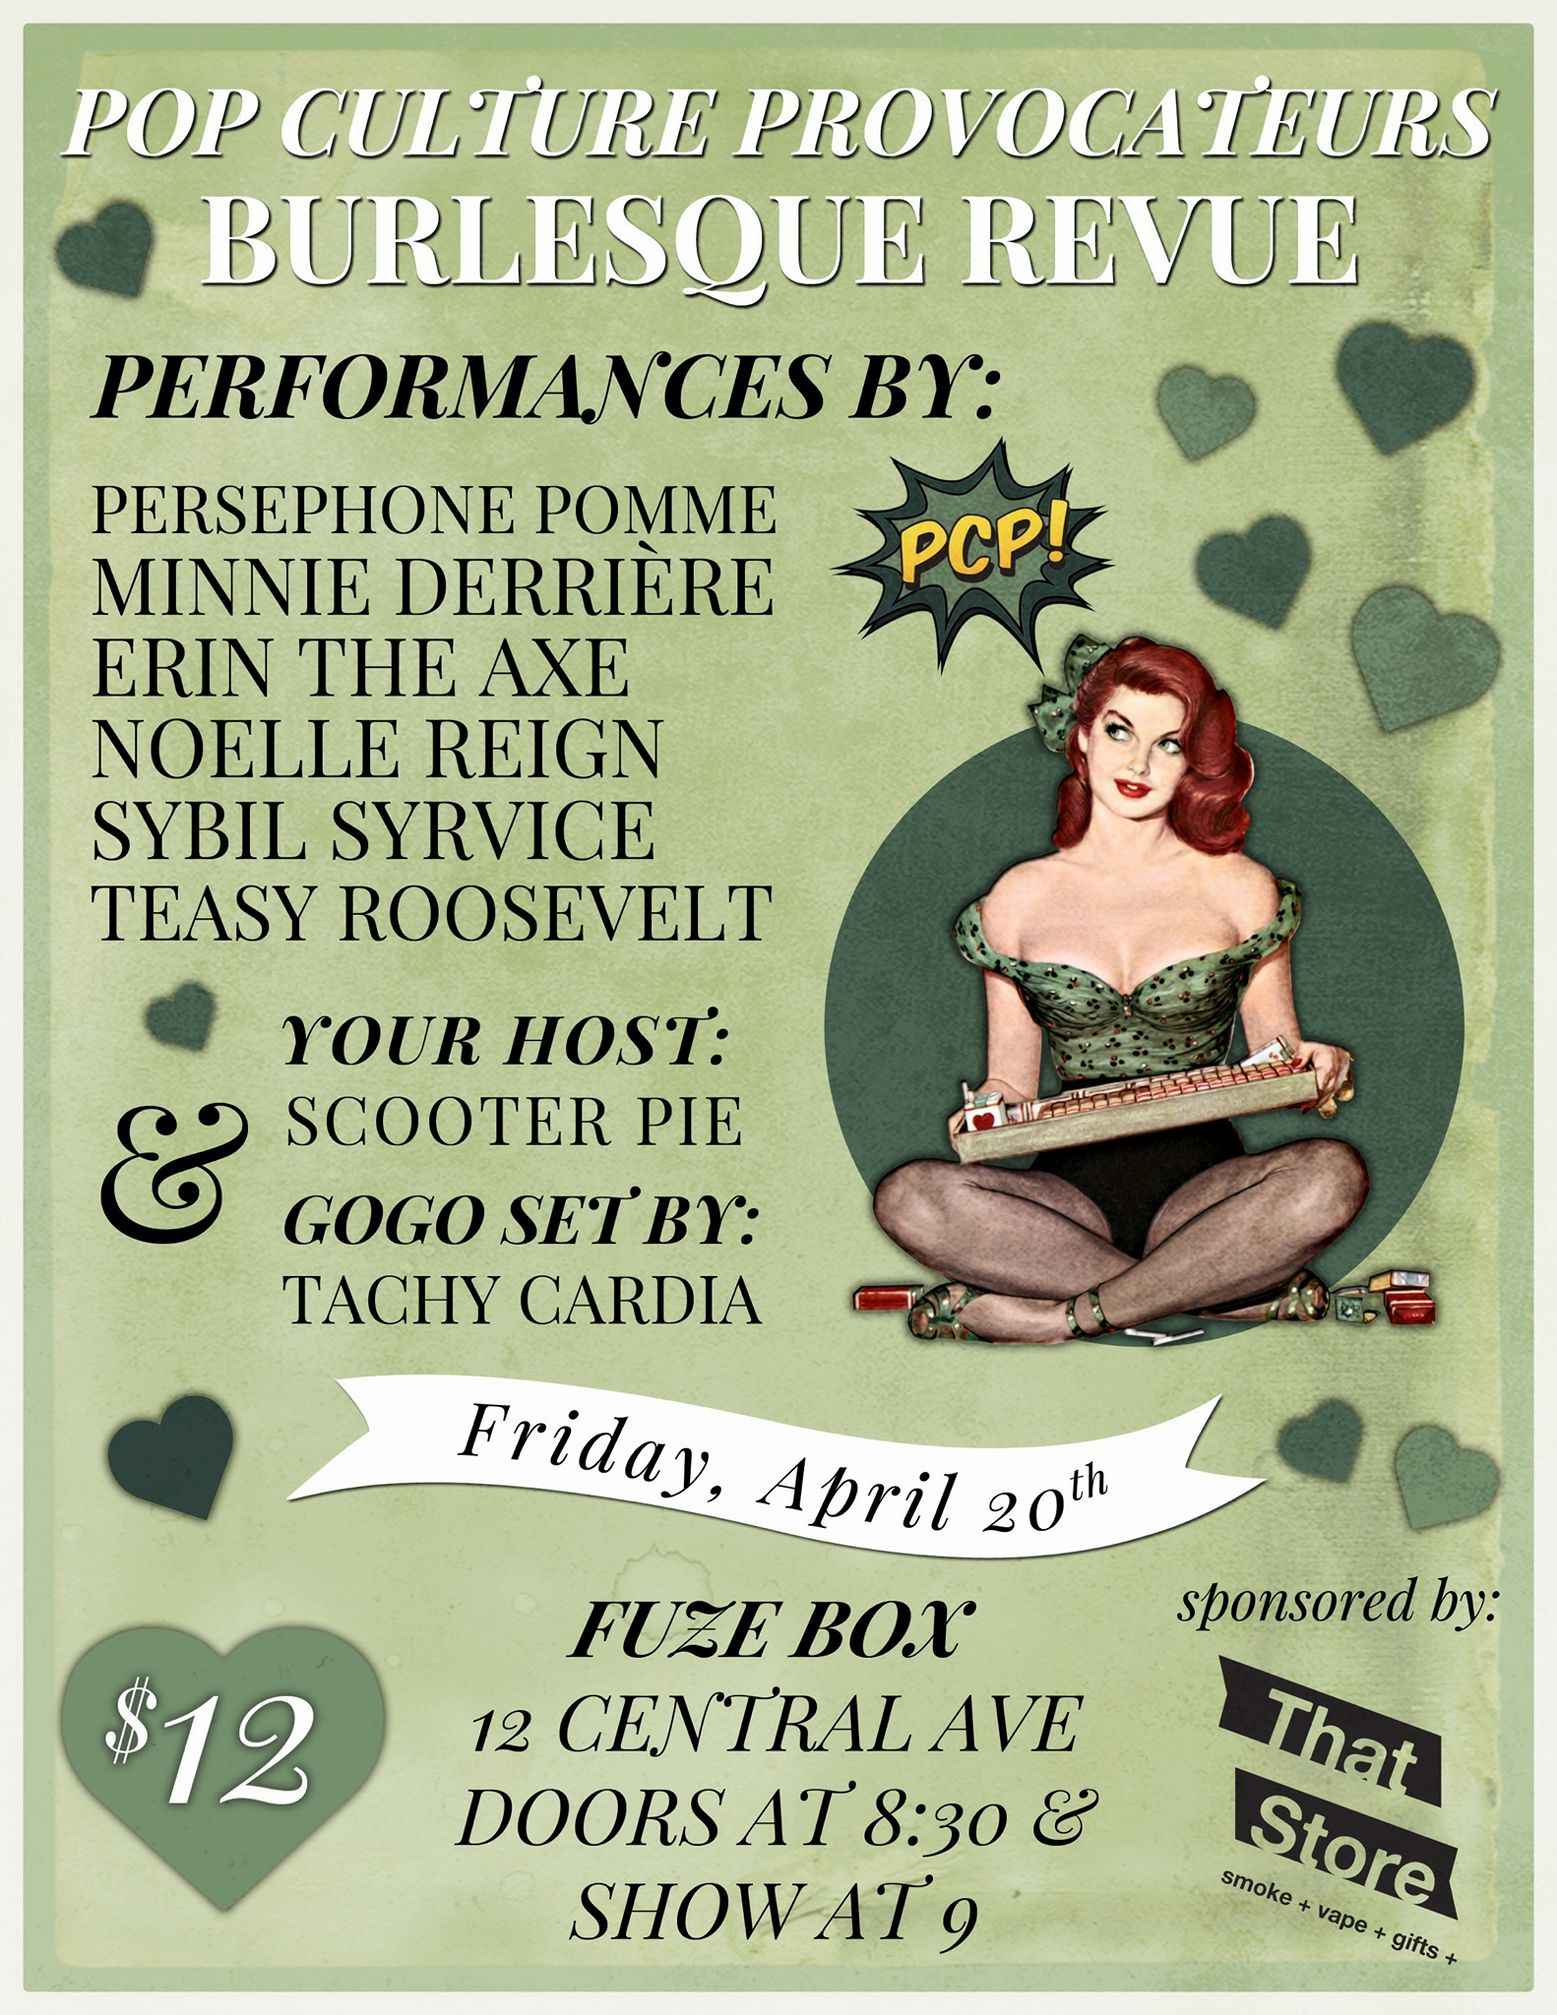 - The smoking hot performers from Pop Culture Provocateurs are back for a special 4/20 performance!Win prizes from That Store in the raffle!Join Pop Culture Provocateursfor the 4/20 edition of our monthly burlesque revue! Featuring smoky, seductive, silly acts by...ERIN THE AXEMINNIE DERRIÈRENOELLE REIGNPERSEPHONE POMMESYBIL SYRVICETEASY ROOSEVELTHosted by SCOOTER PIEGogo set by out stage kitten, TACHY CARDIAFRIDAY, APRIL 20THDOORS AT 830 // SHOW AT 9FUZE BOX 12 CENTRAL AVE$12